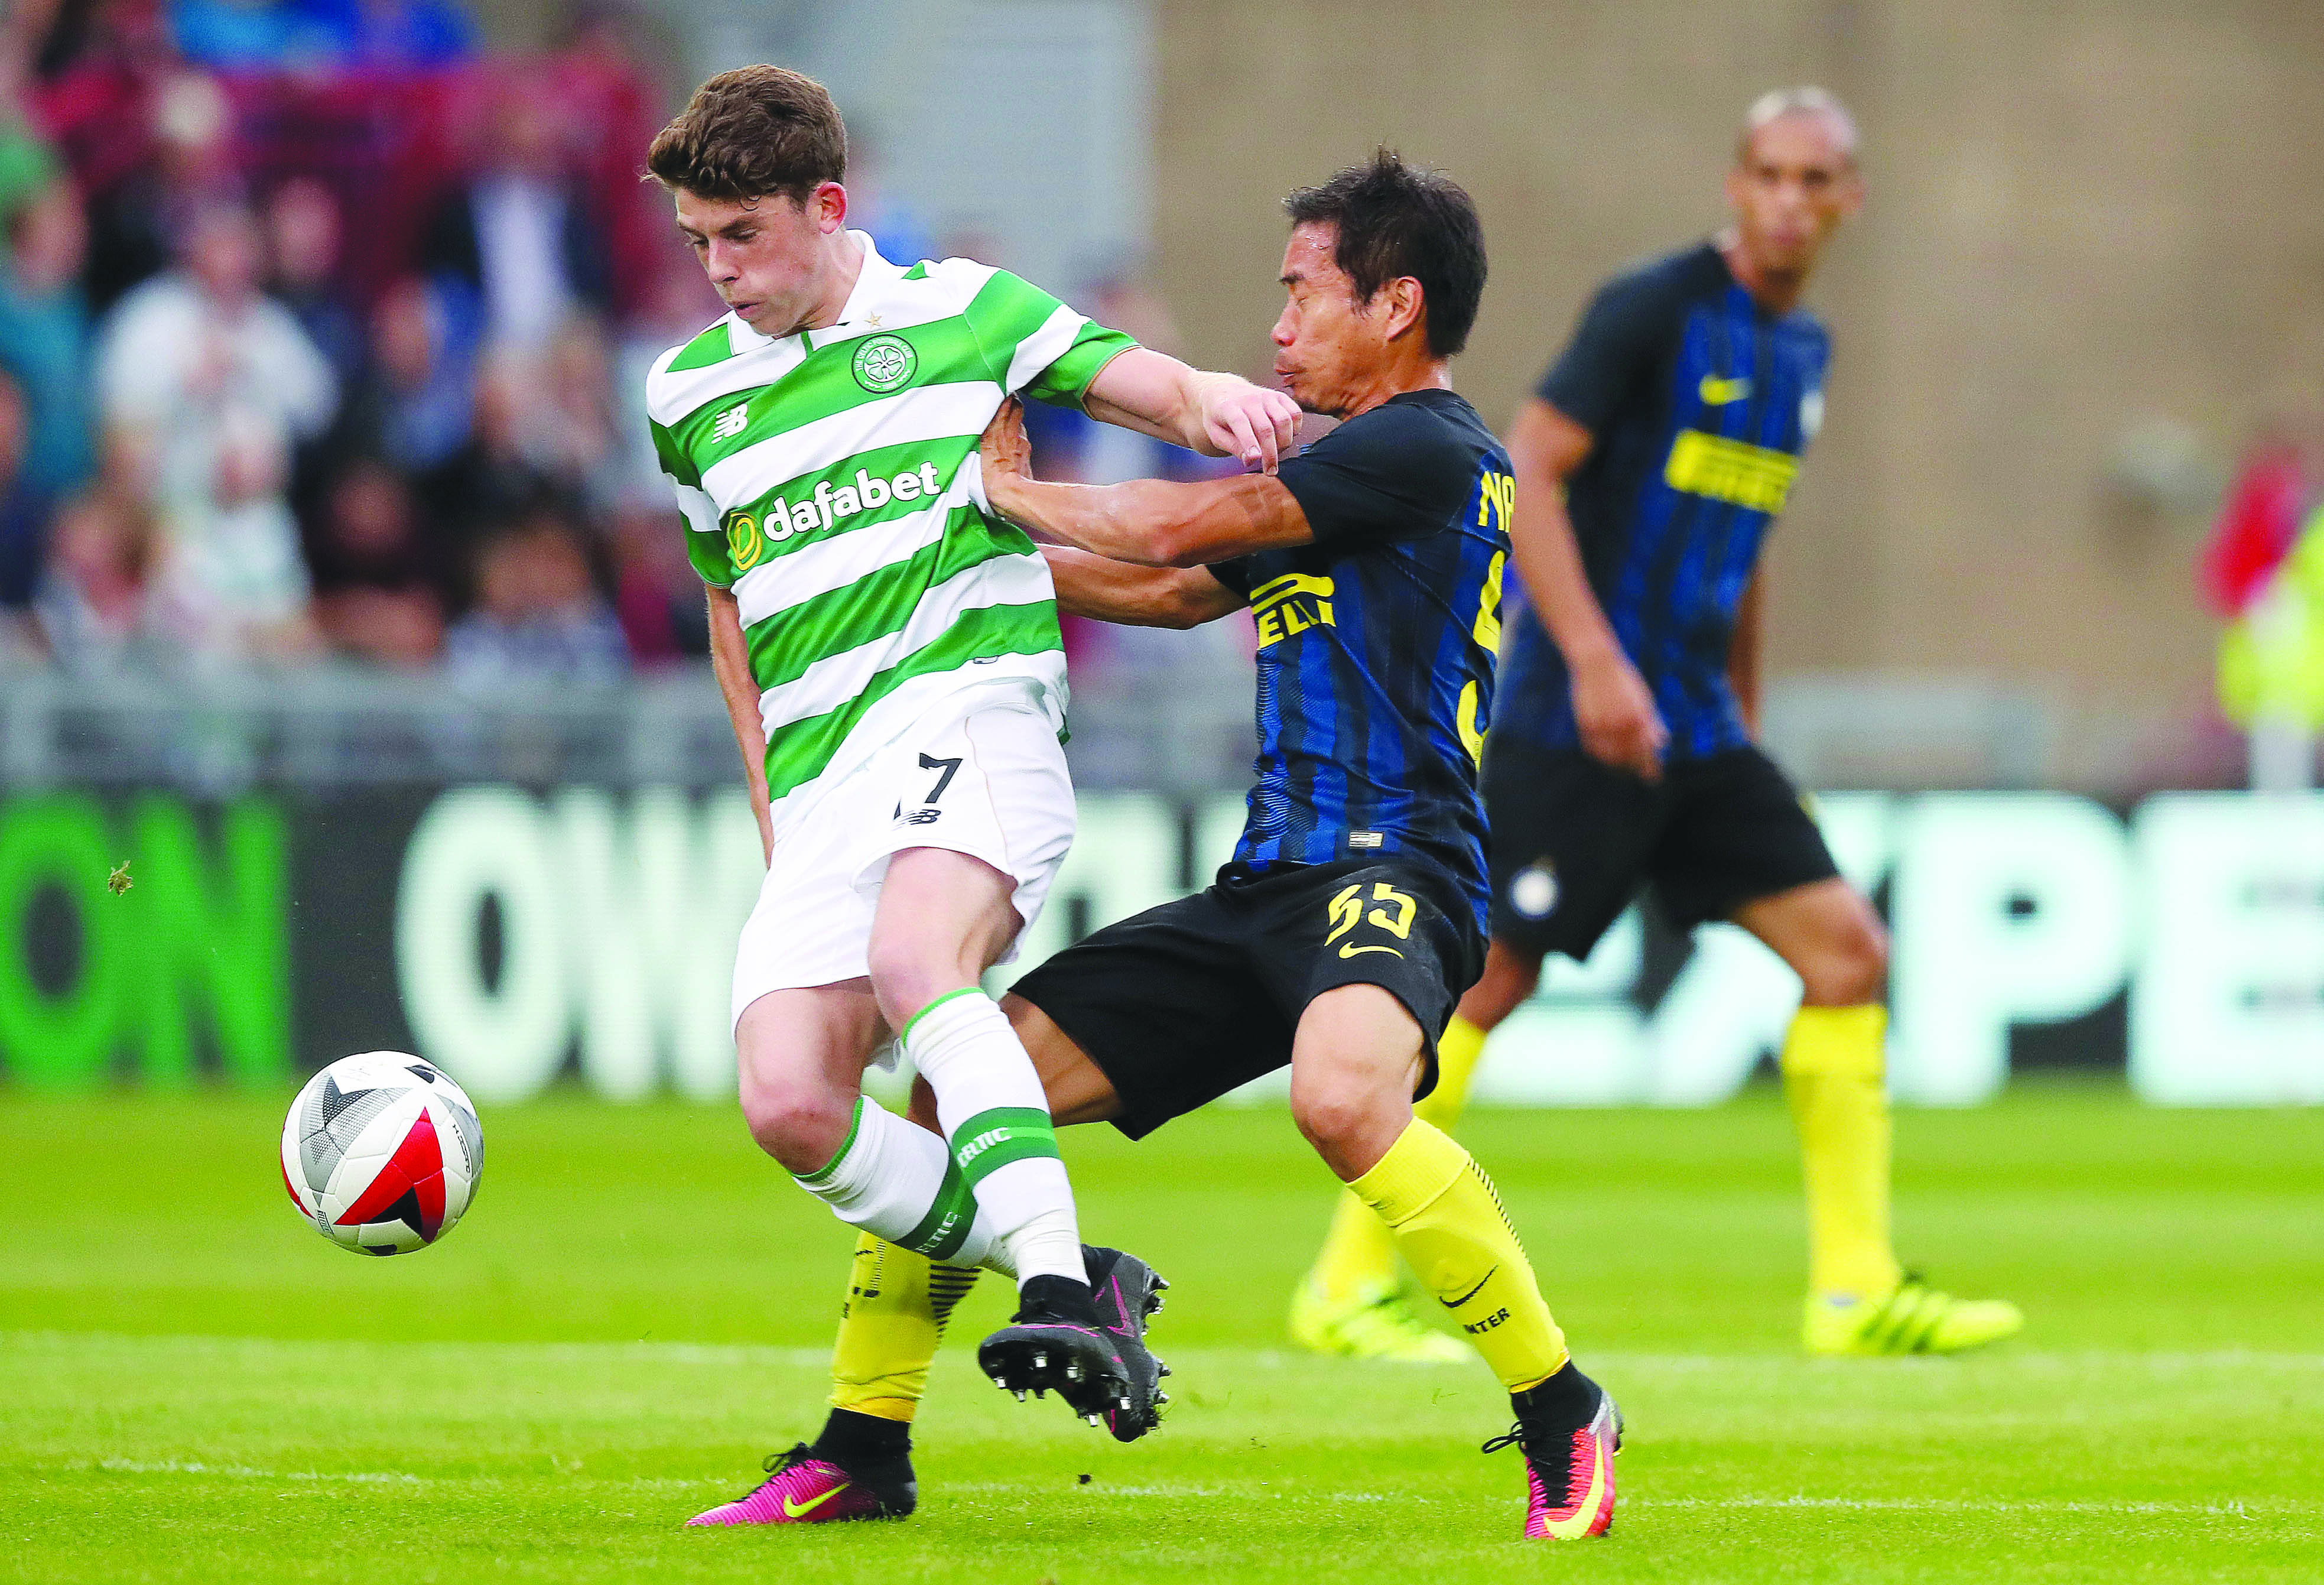 Rumours persist surrounding a number of Celtic players including Ryan Christie who could be the subject of a transfer bid before the window closes ahead of the first Glasgow derby on October 17